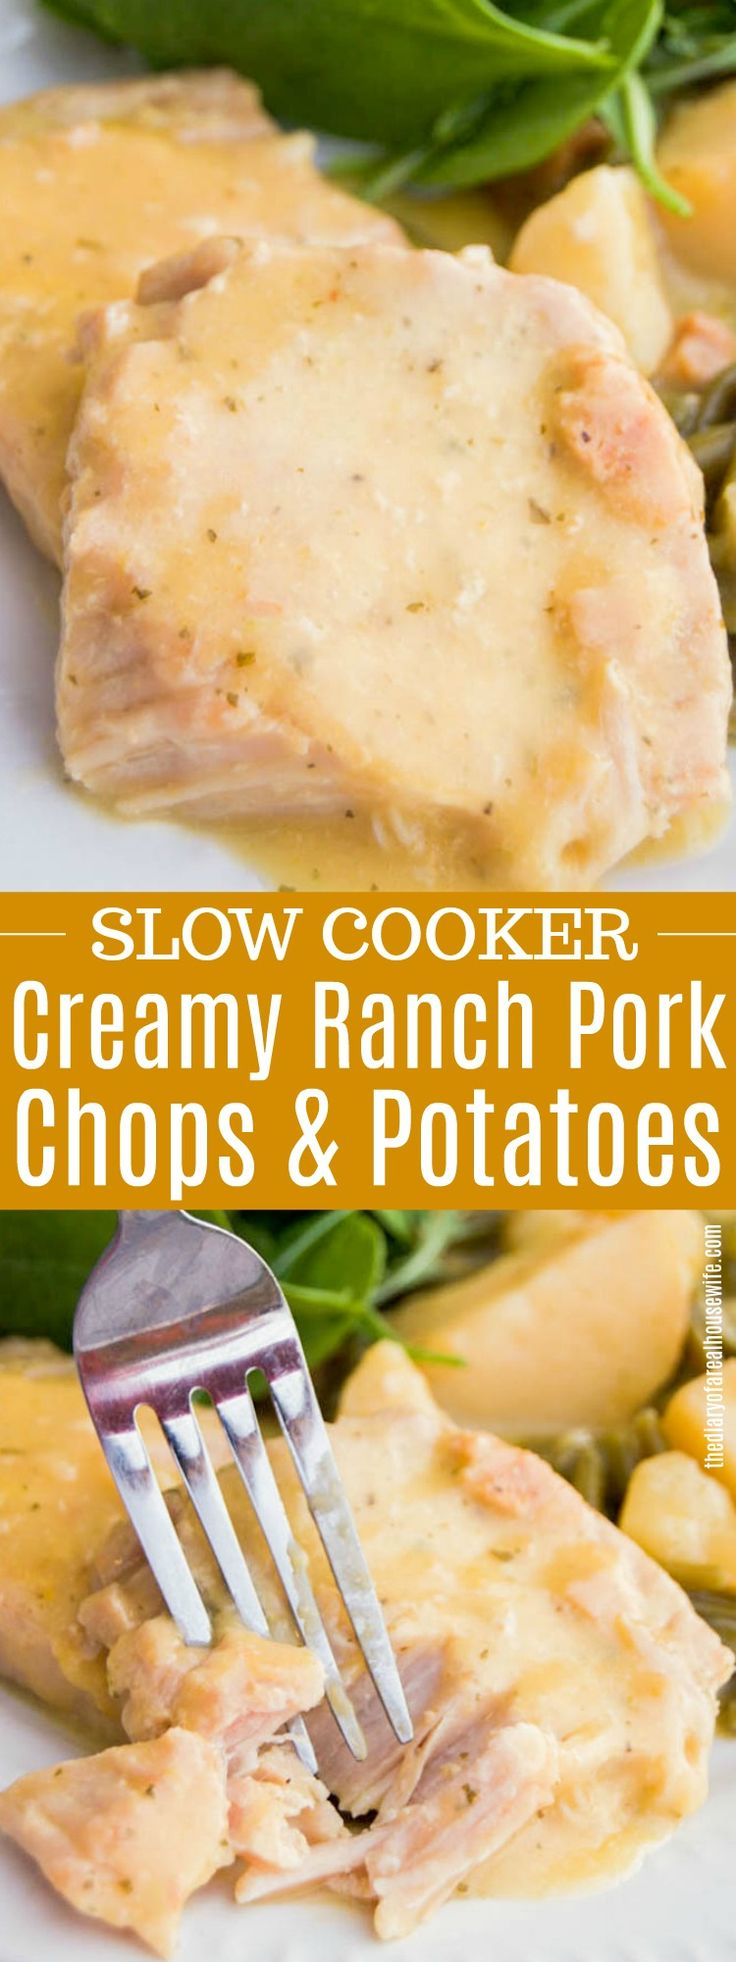 Slow Cooker Creamy Ranch Pork Chops and Potatoes #slowcooker #dinner #pork